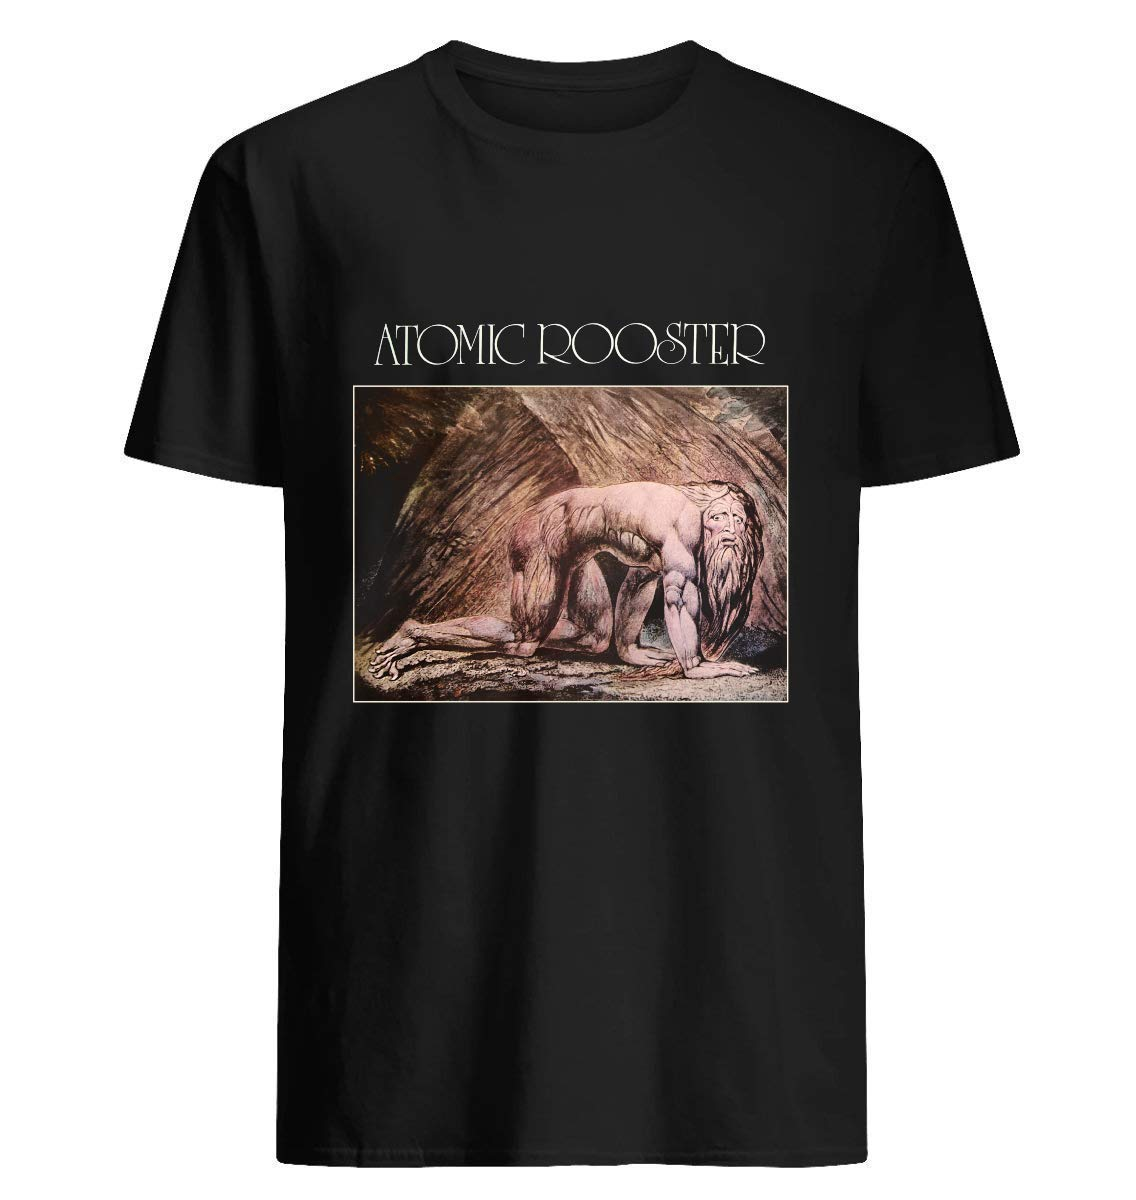 Atomic Rooster 53 T Shirt For Unisex